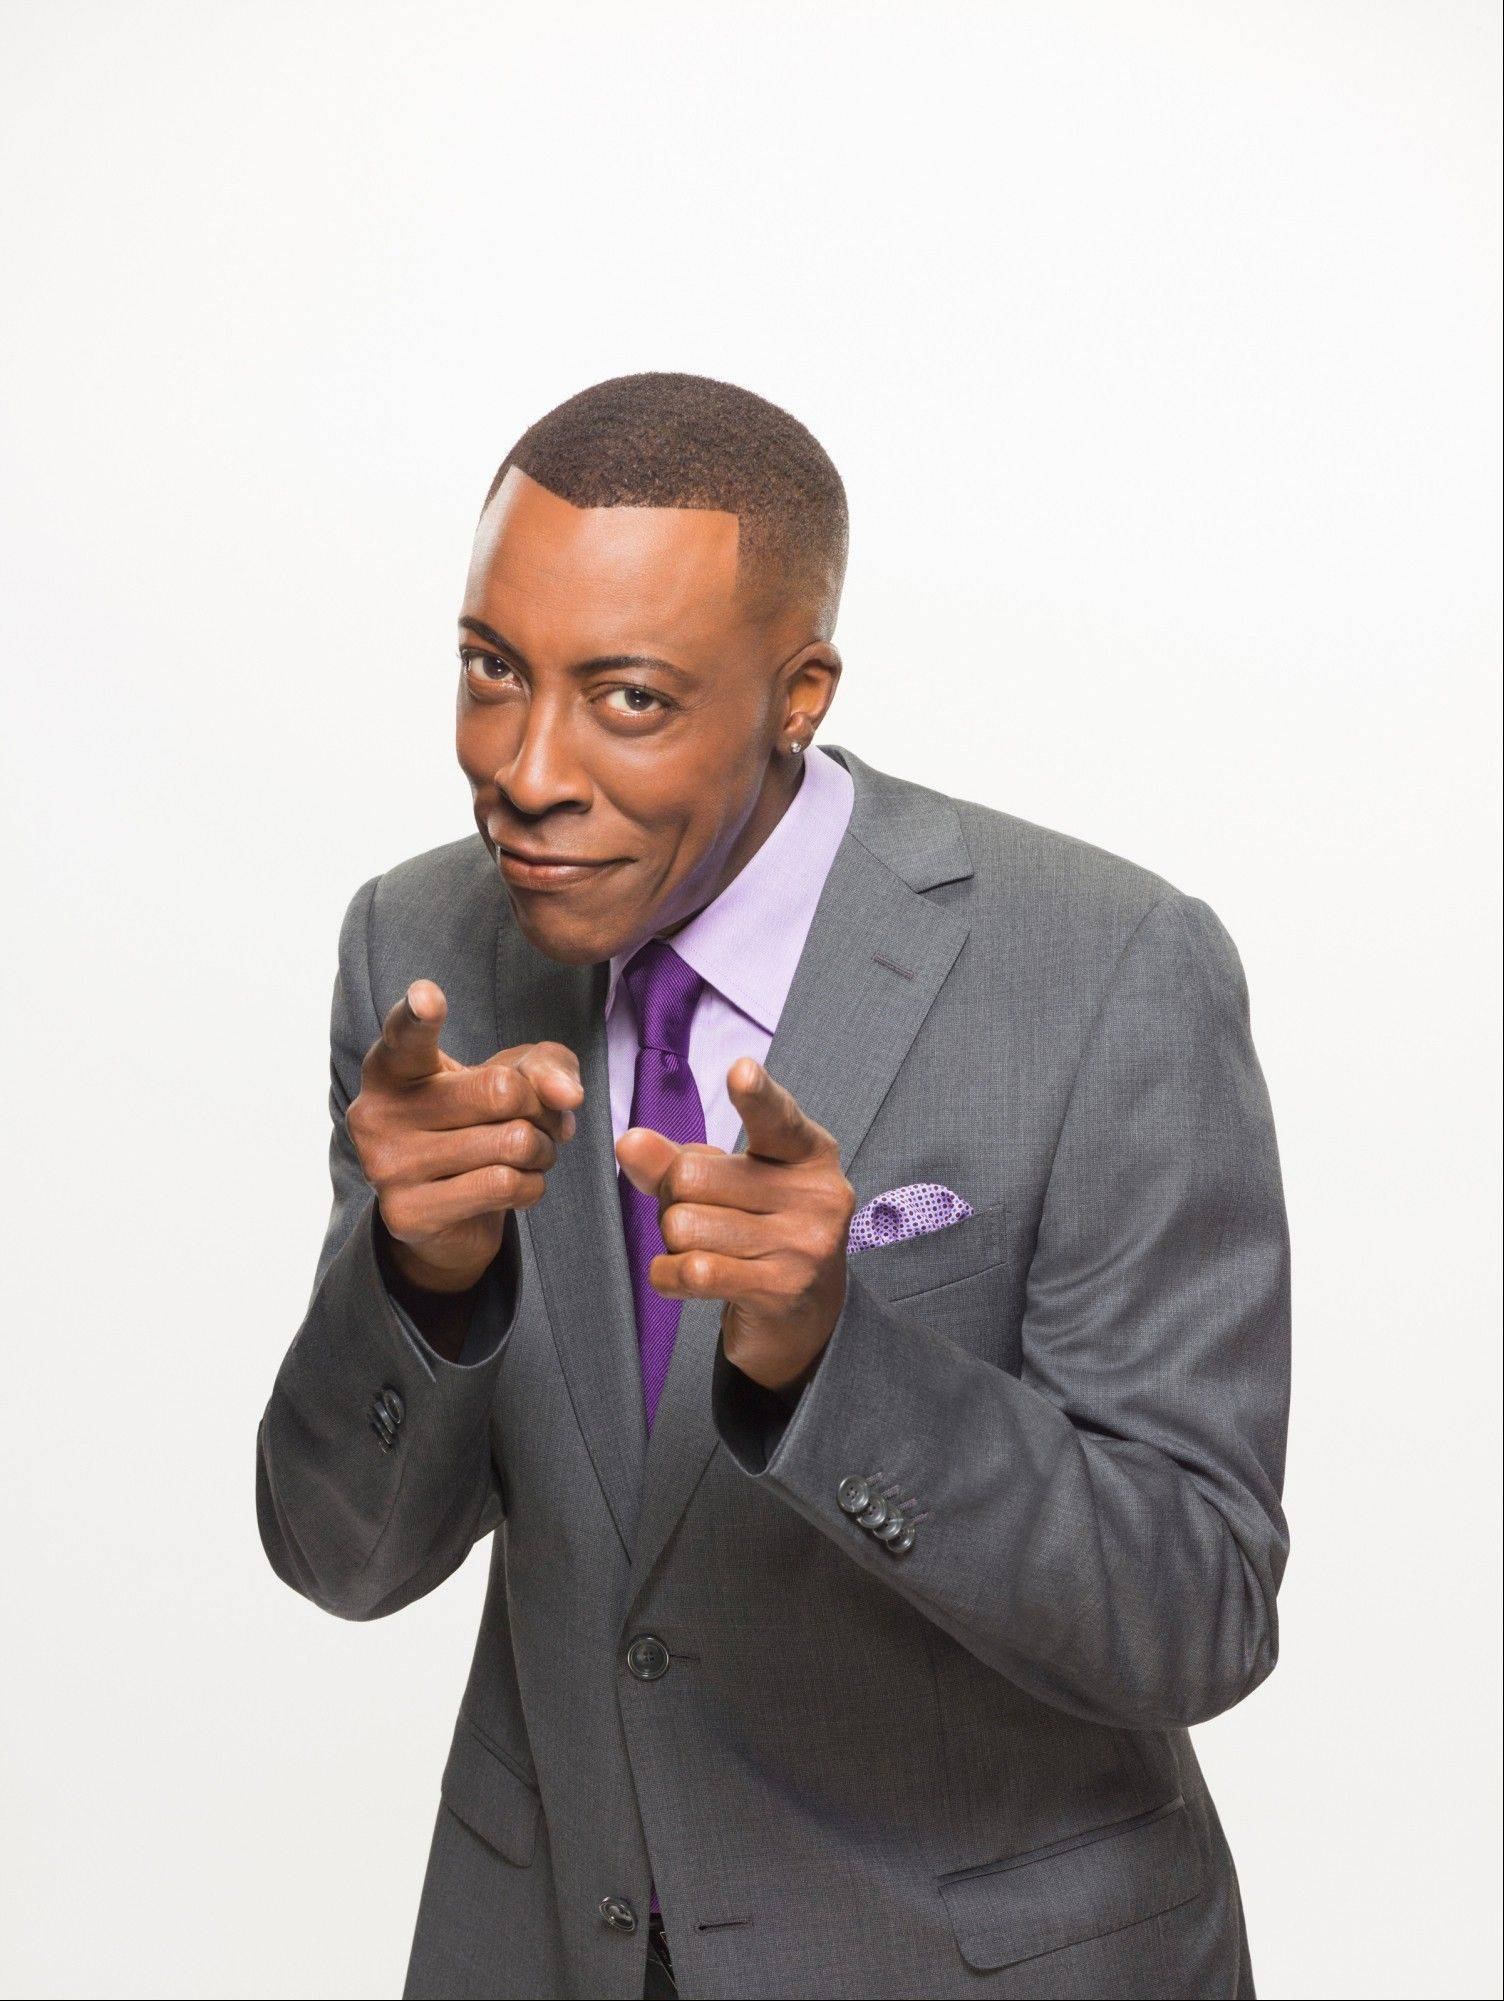 �The Arsenio Hall Show� is scheduled to air this fall on CBS.